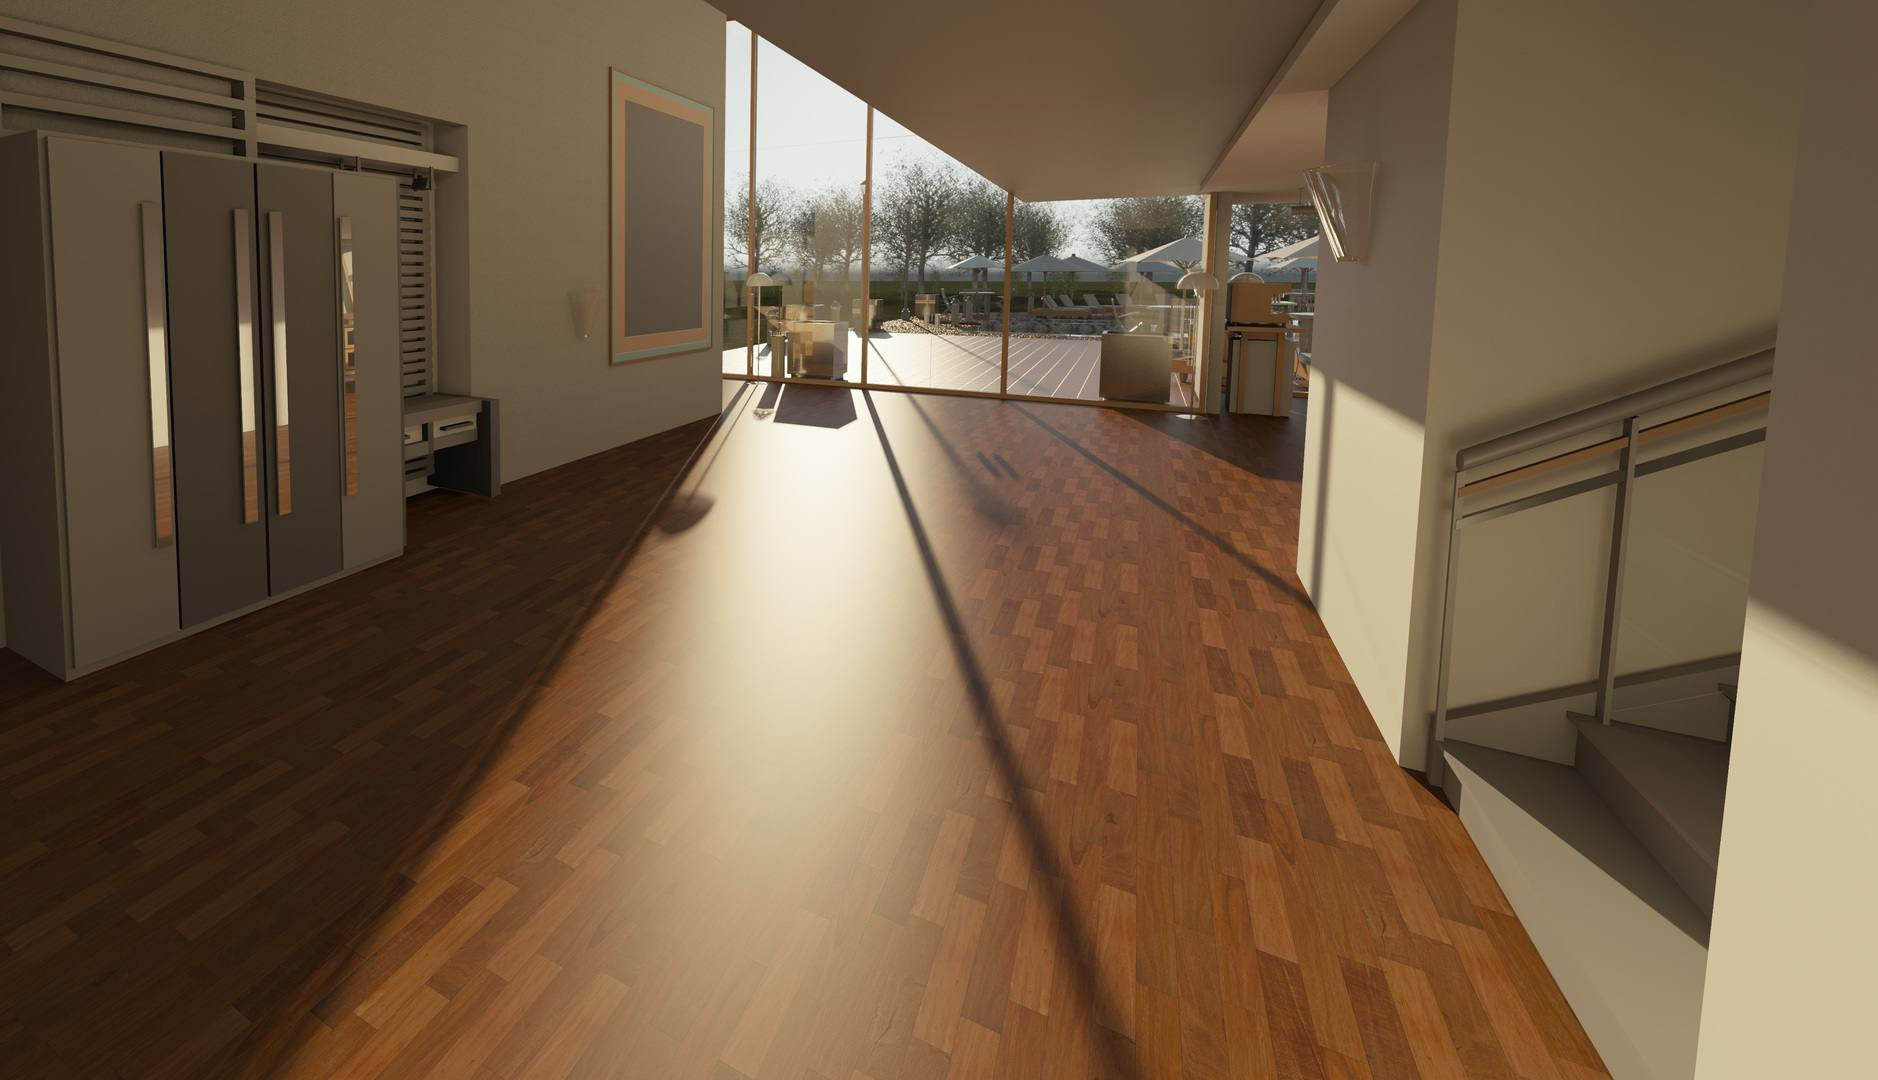 hardwood floor on top of carpet of common flooring types currently used in renovation and building intended for architecture wood house floor interior window 917178 pxhere com 5ba27a2cc9e77c00503b27b9